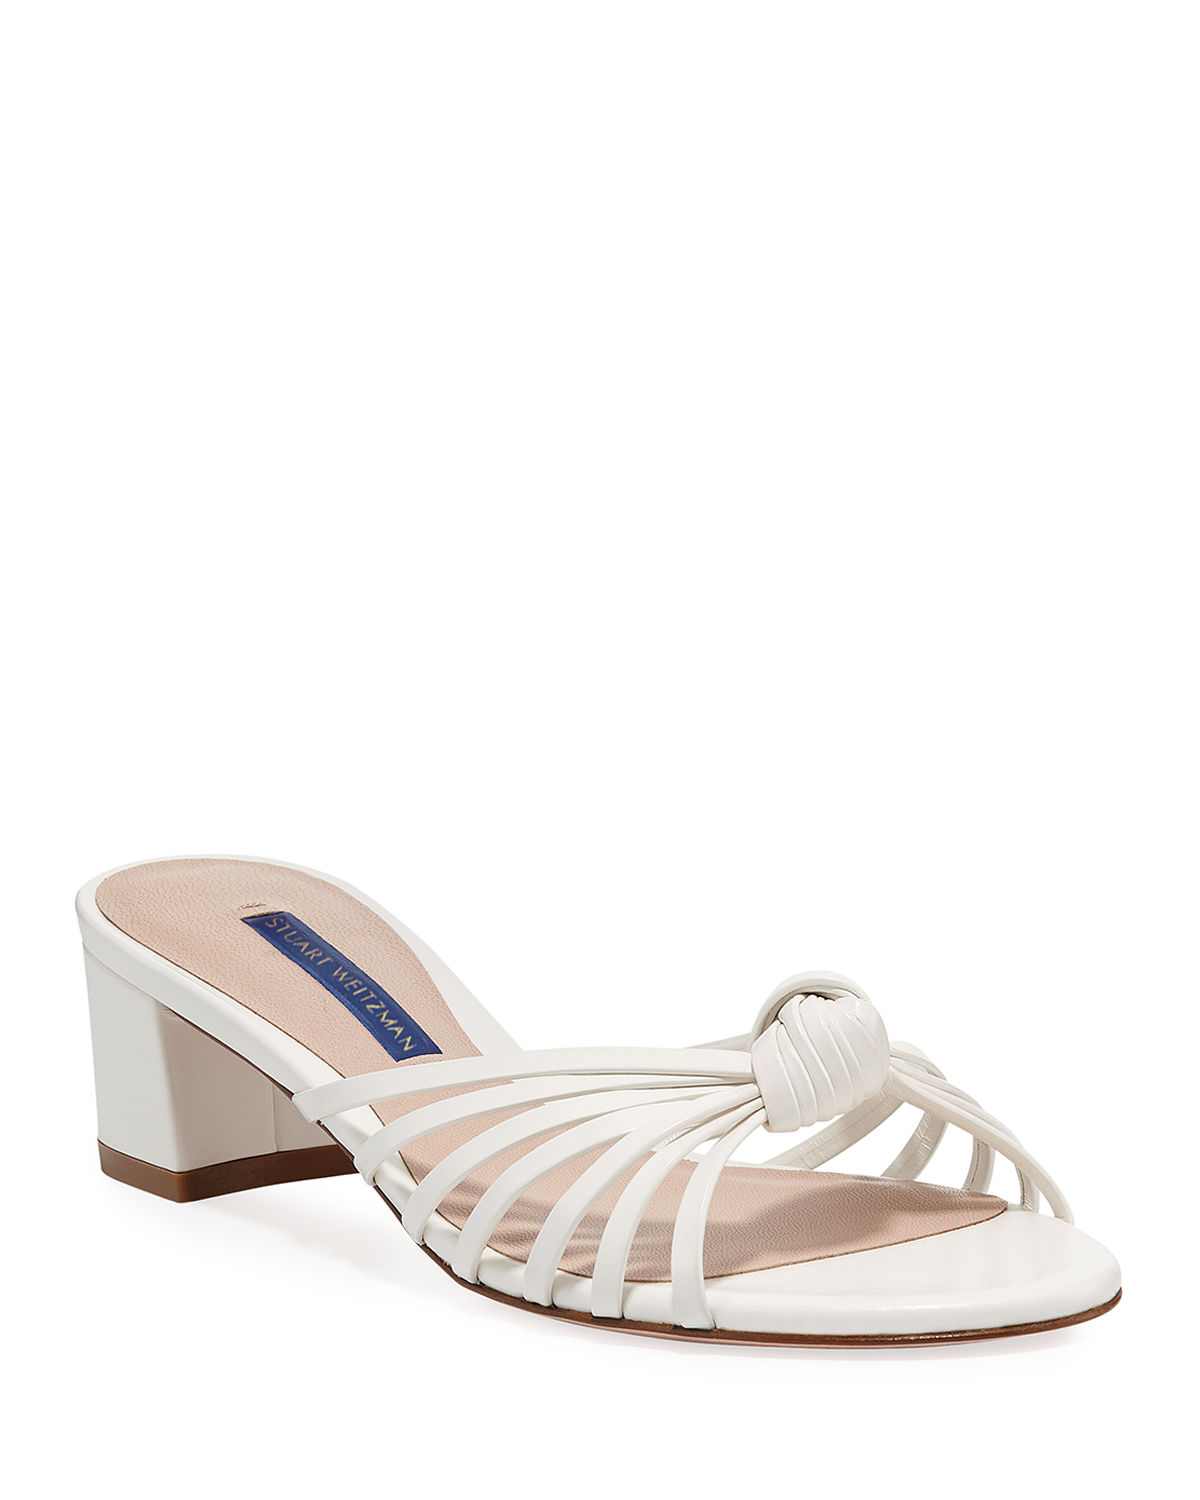 0aa2abf8a1e0 Stuart Weitzman Sidney Strappy Leather Sandals